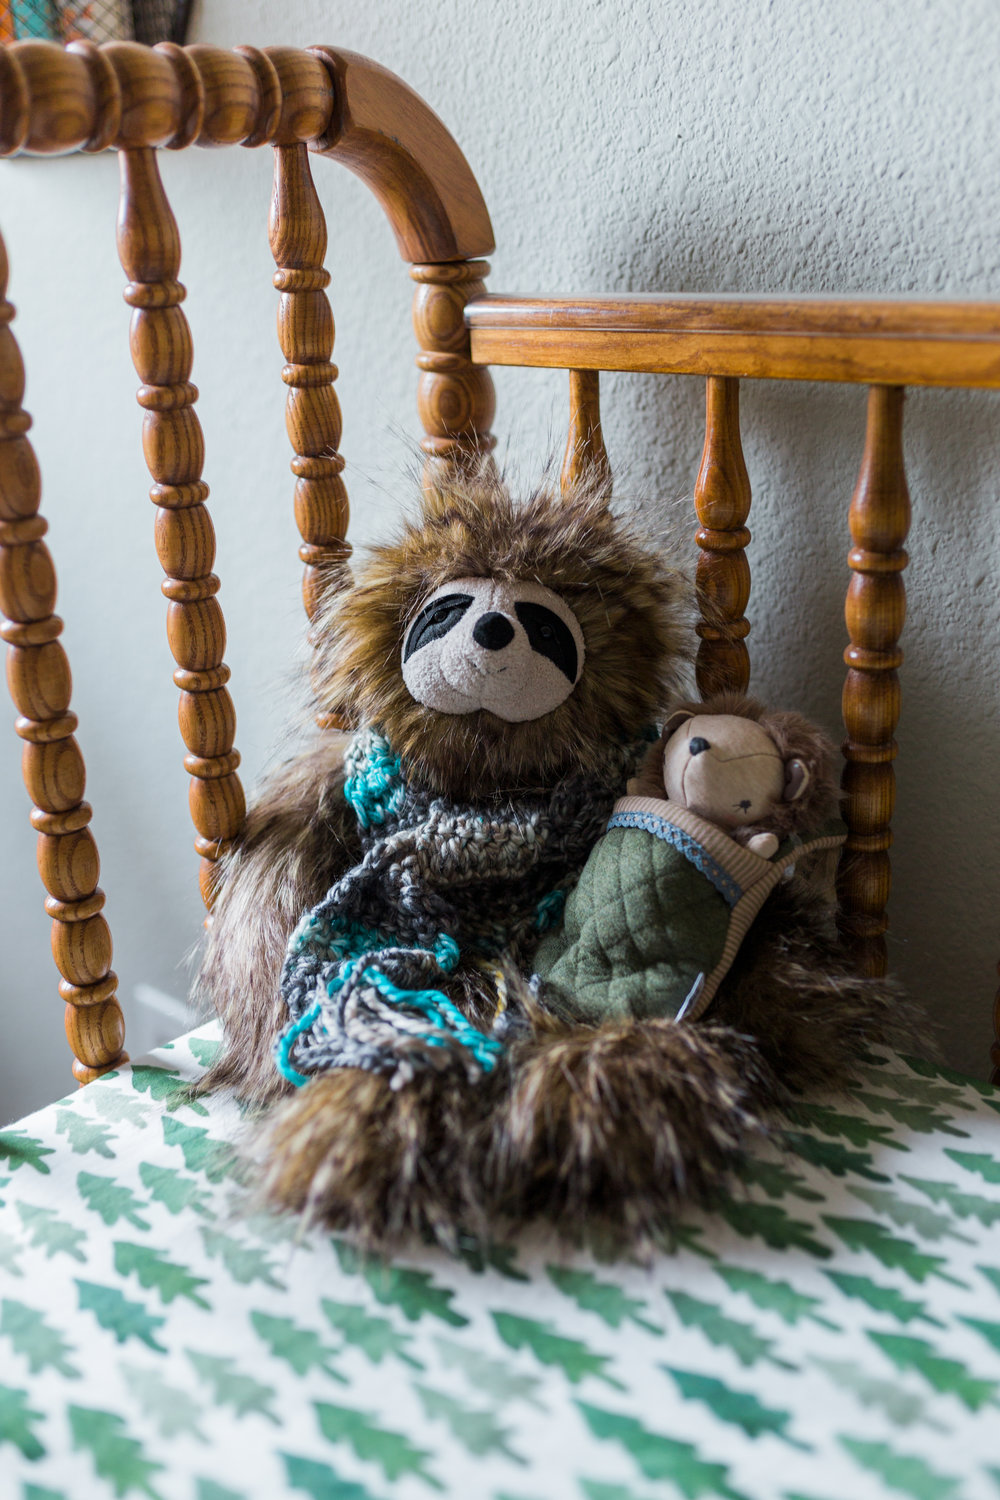 My mom bought this sloth because we saw one together at the Dallas World Museum when she flew here with me in January. Apparently it made her think of Wesley. :) She also made the scarf and a super-cute hat that matches it! Also, I'm obsessed with the sheets!!